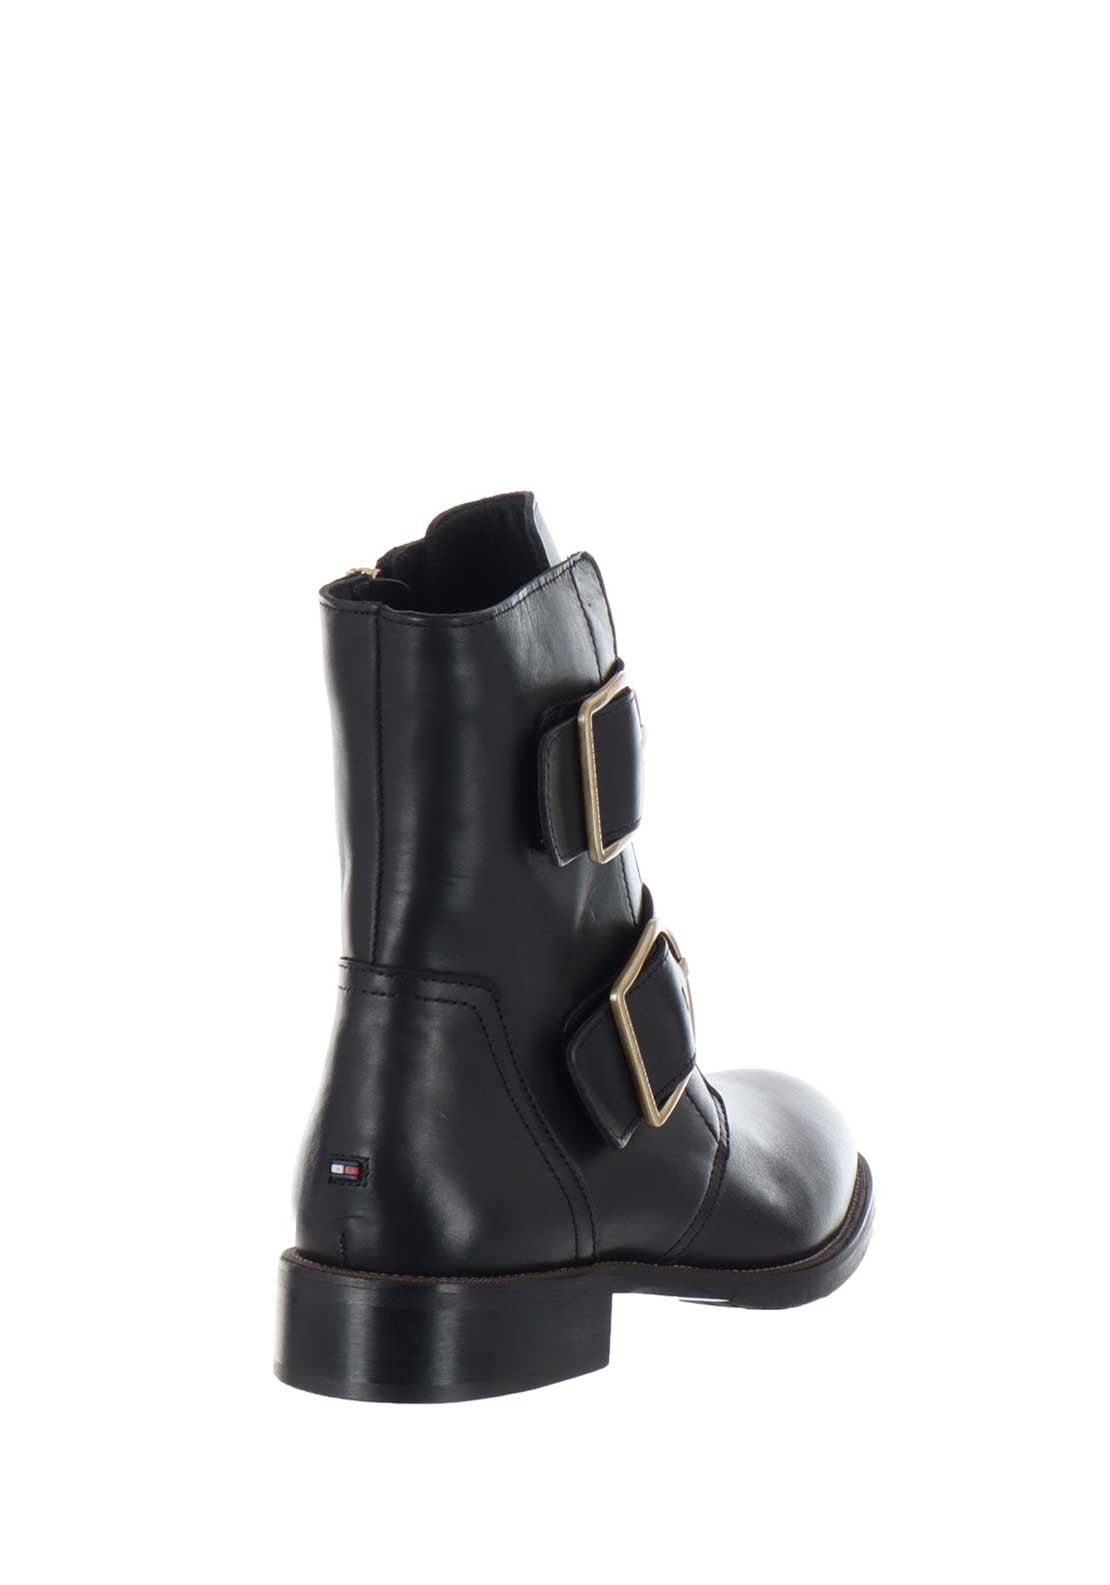 new style d90db 85d3f Tommy Hilfiger Womens Oversized Buckle Leather Boots, Black